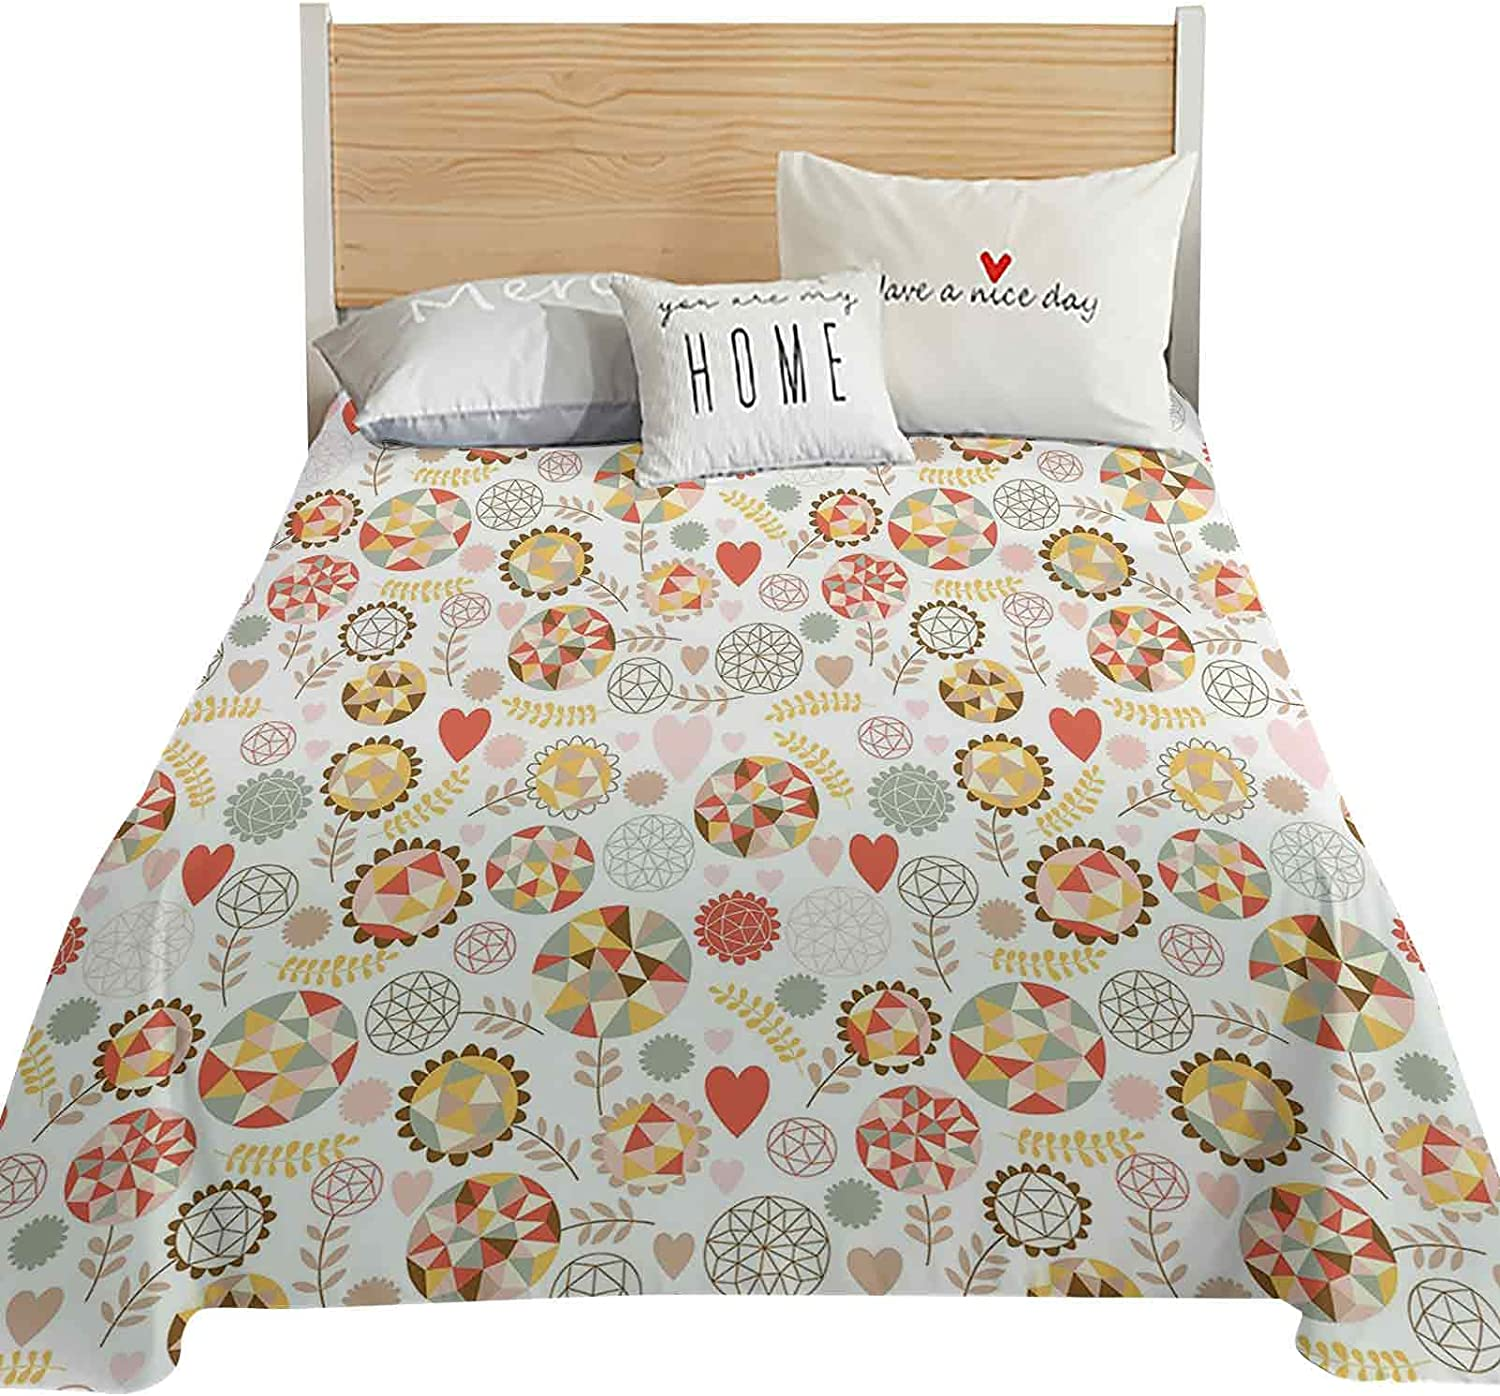 Floral King Size Flat Sheet Only with Blooms Geometric Ranking TOP9 Style Po Max 79% OFF